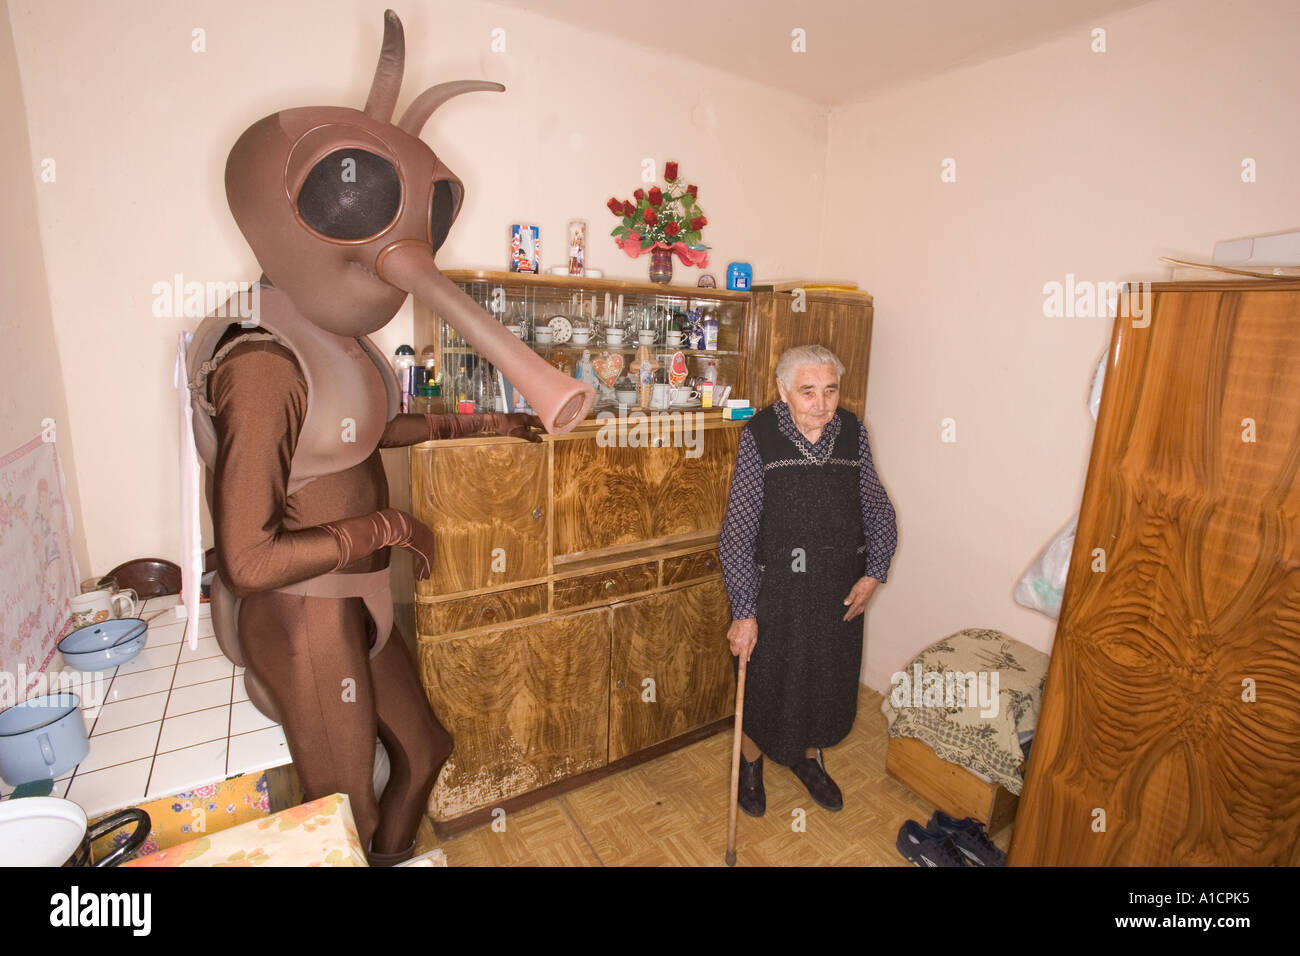 Old woman and a tall man in mosquito costume in an old kitchen & Old woman and a tall man in mosquito costume in an old kitchen Stock ...